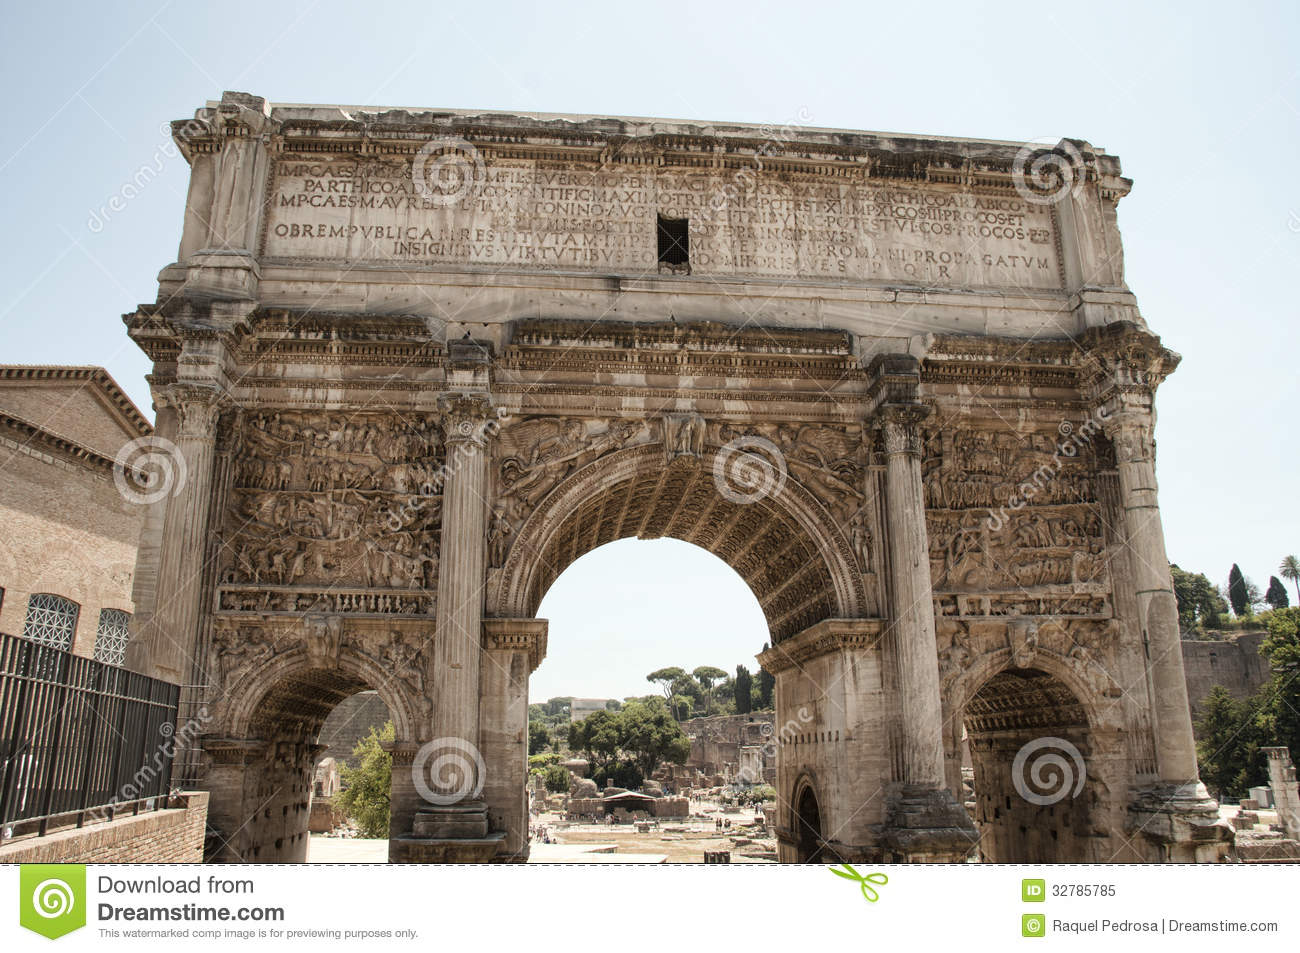 triumphal roman archs essay The name of this object is called the arch of titus this is also a triumphal arch  dedicated to the emperor titus it dates to 121 bc and was built in rome and.